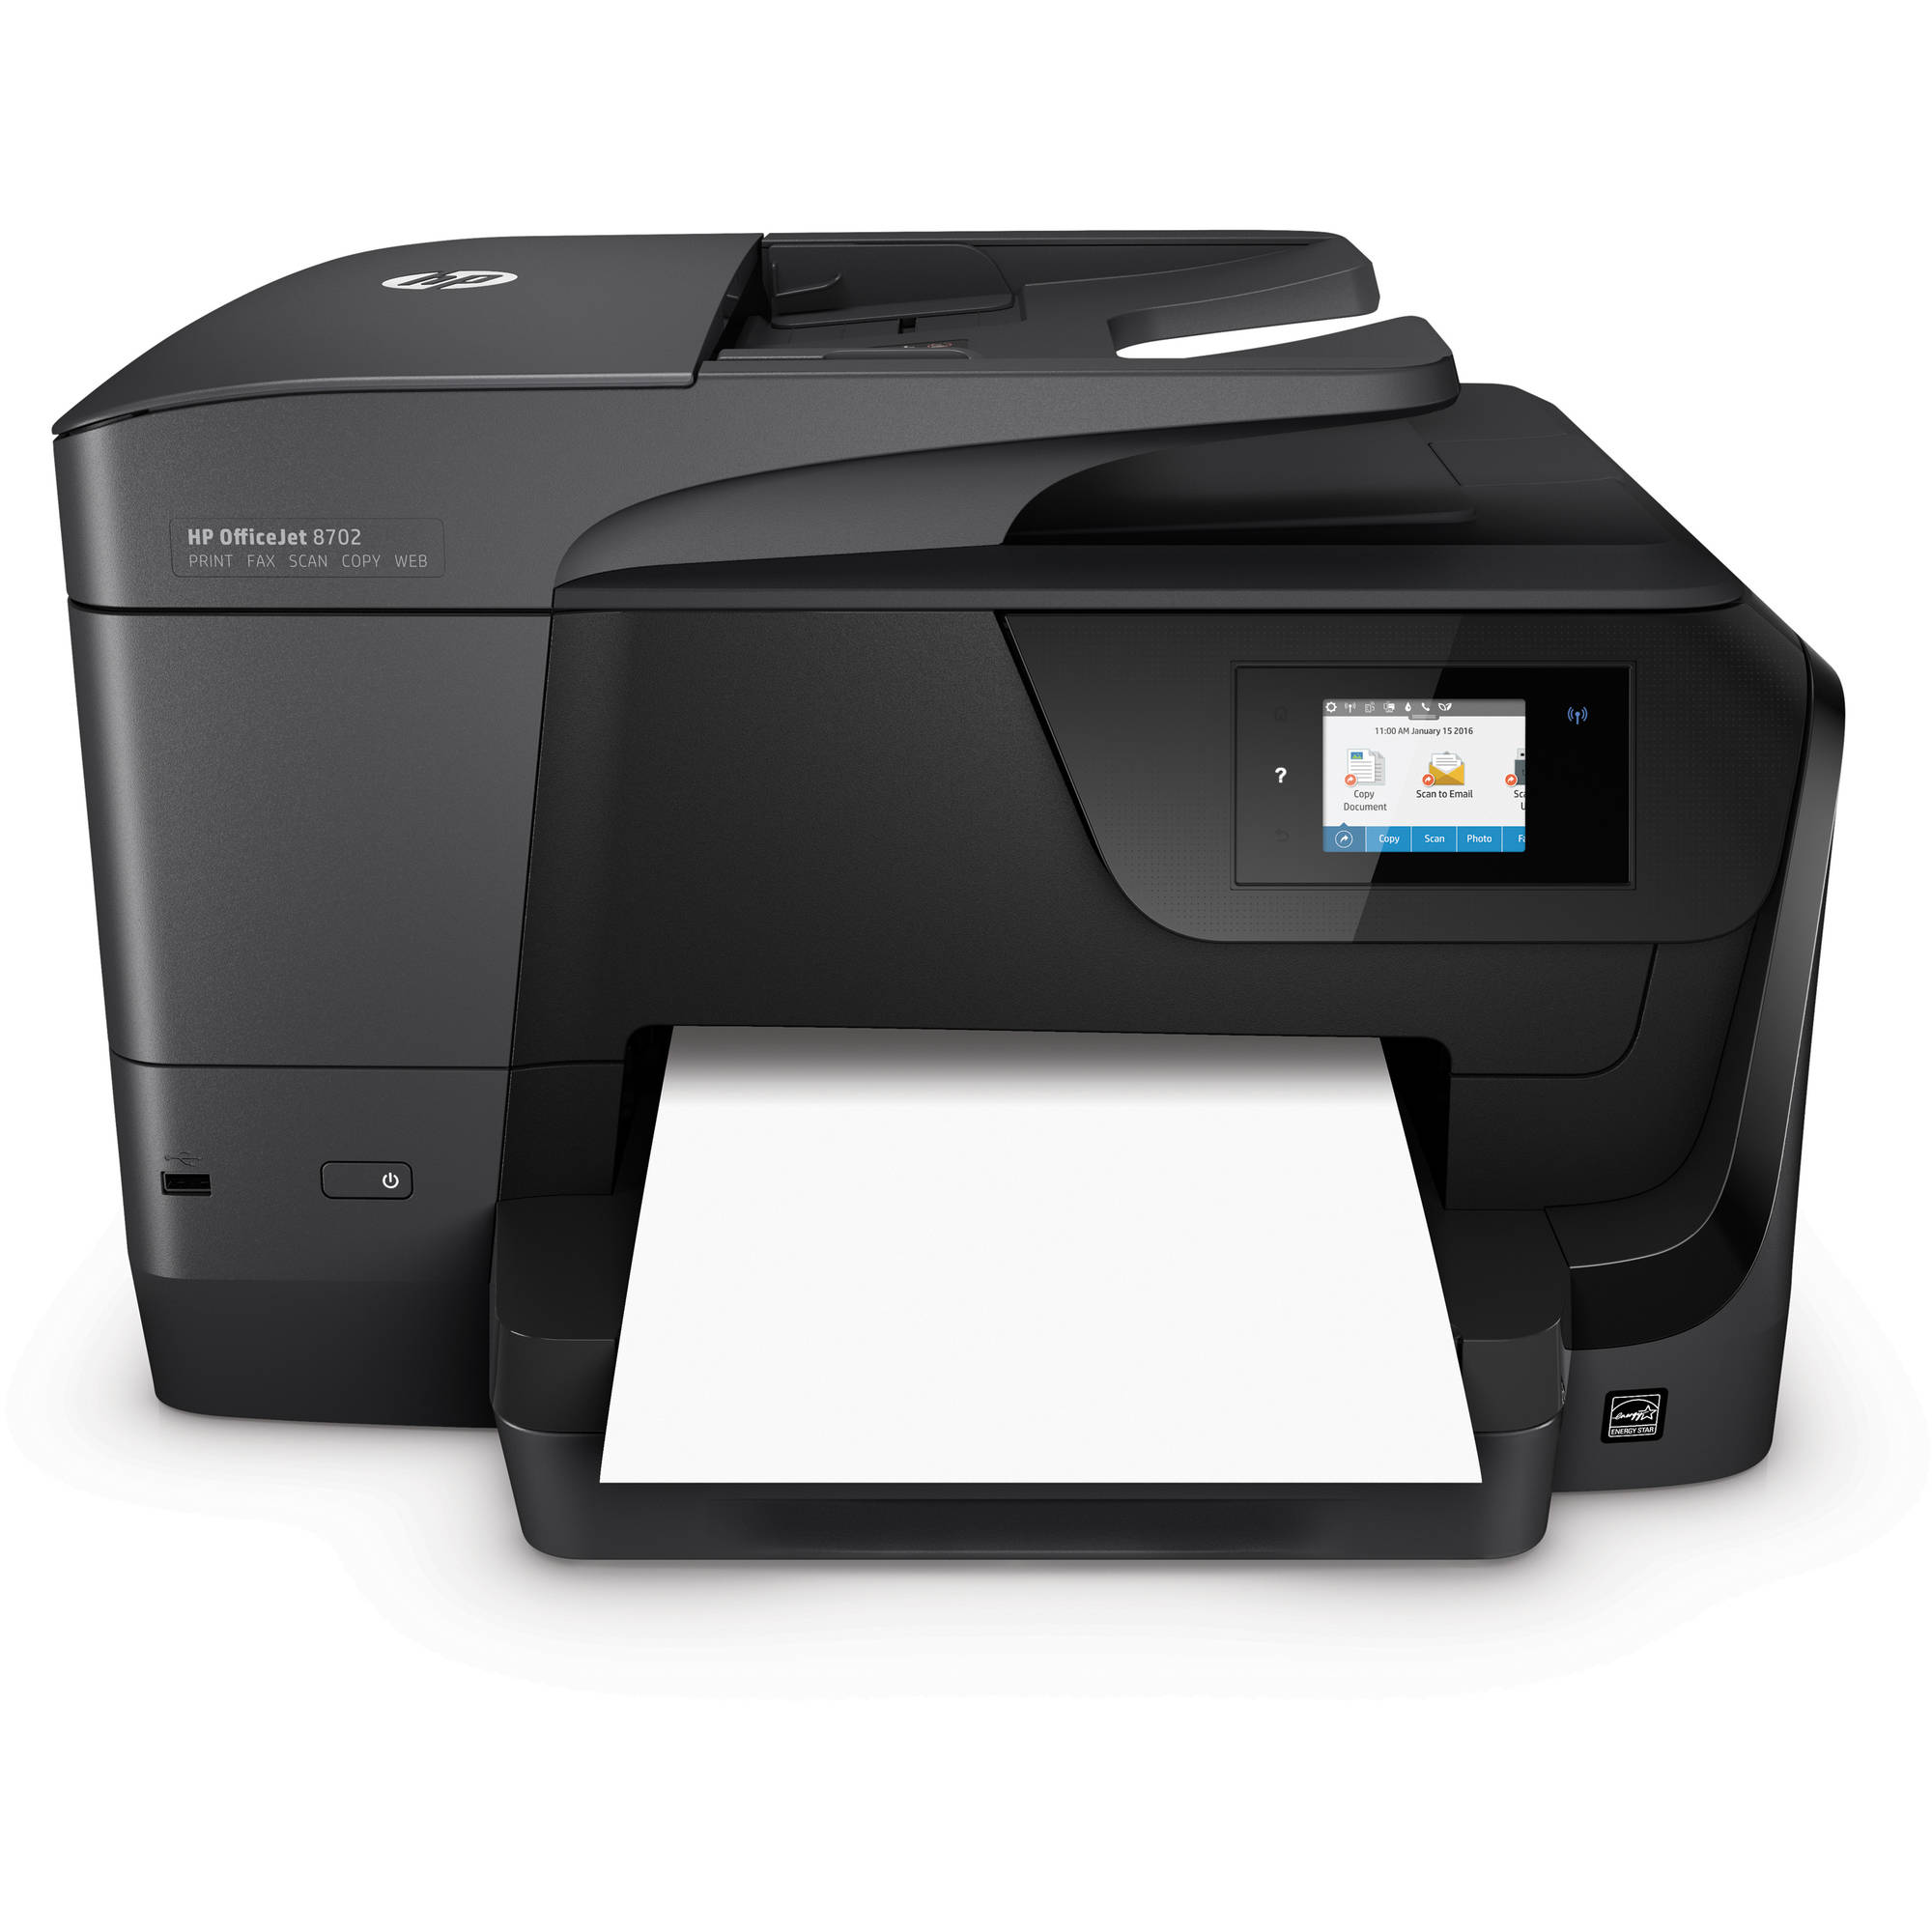 HP OfficeJet 8702 All in One Wireless Printer